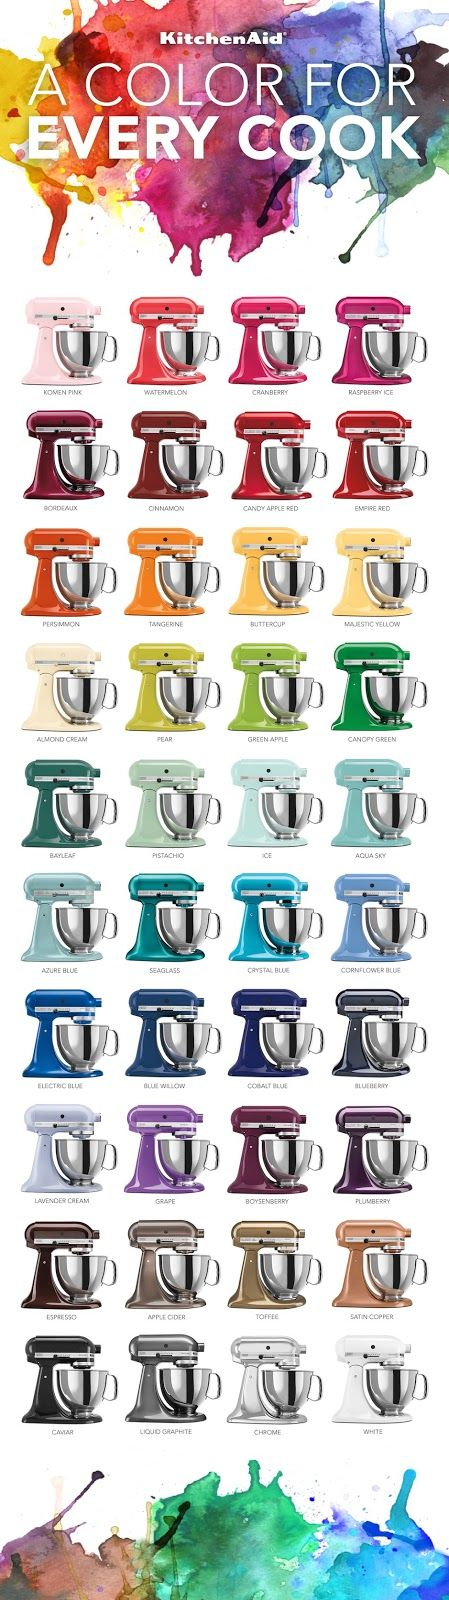 Nohsar Kitchen Aid Mixer In Every Color For The